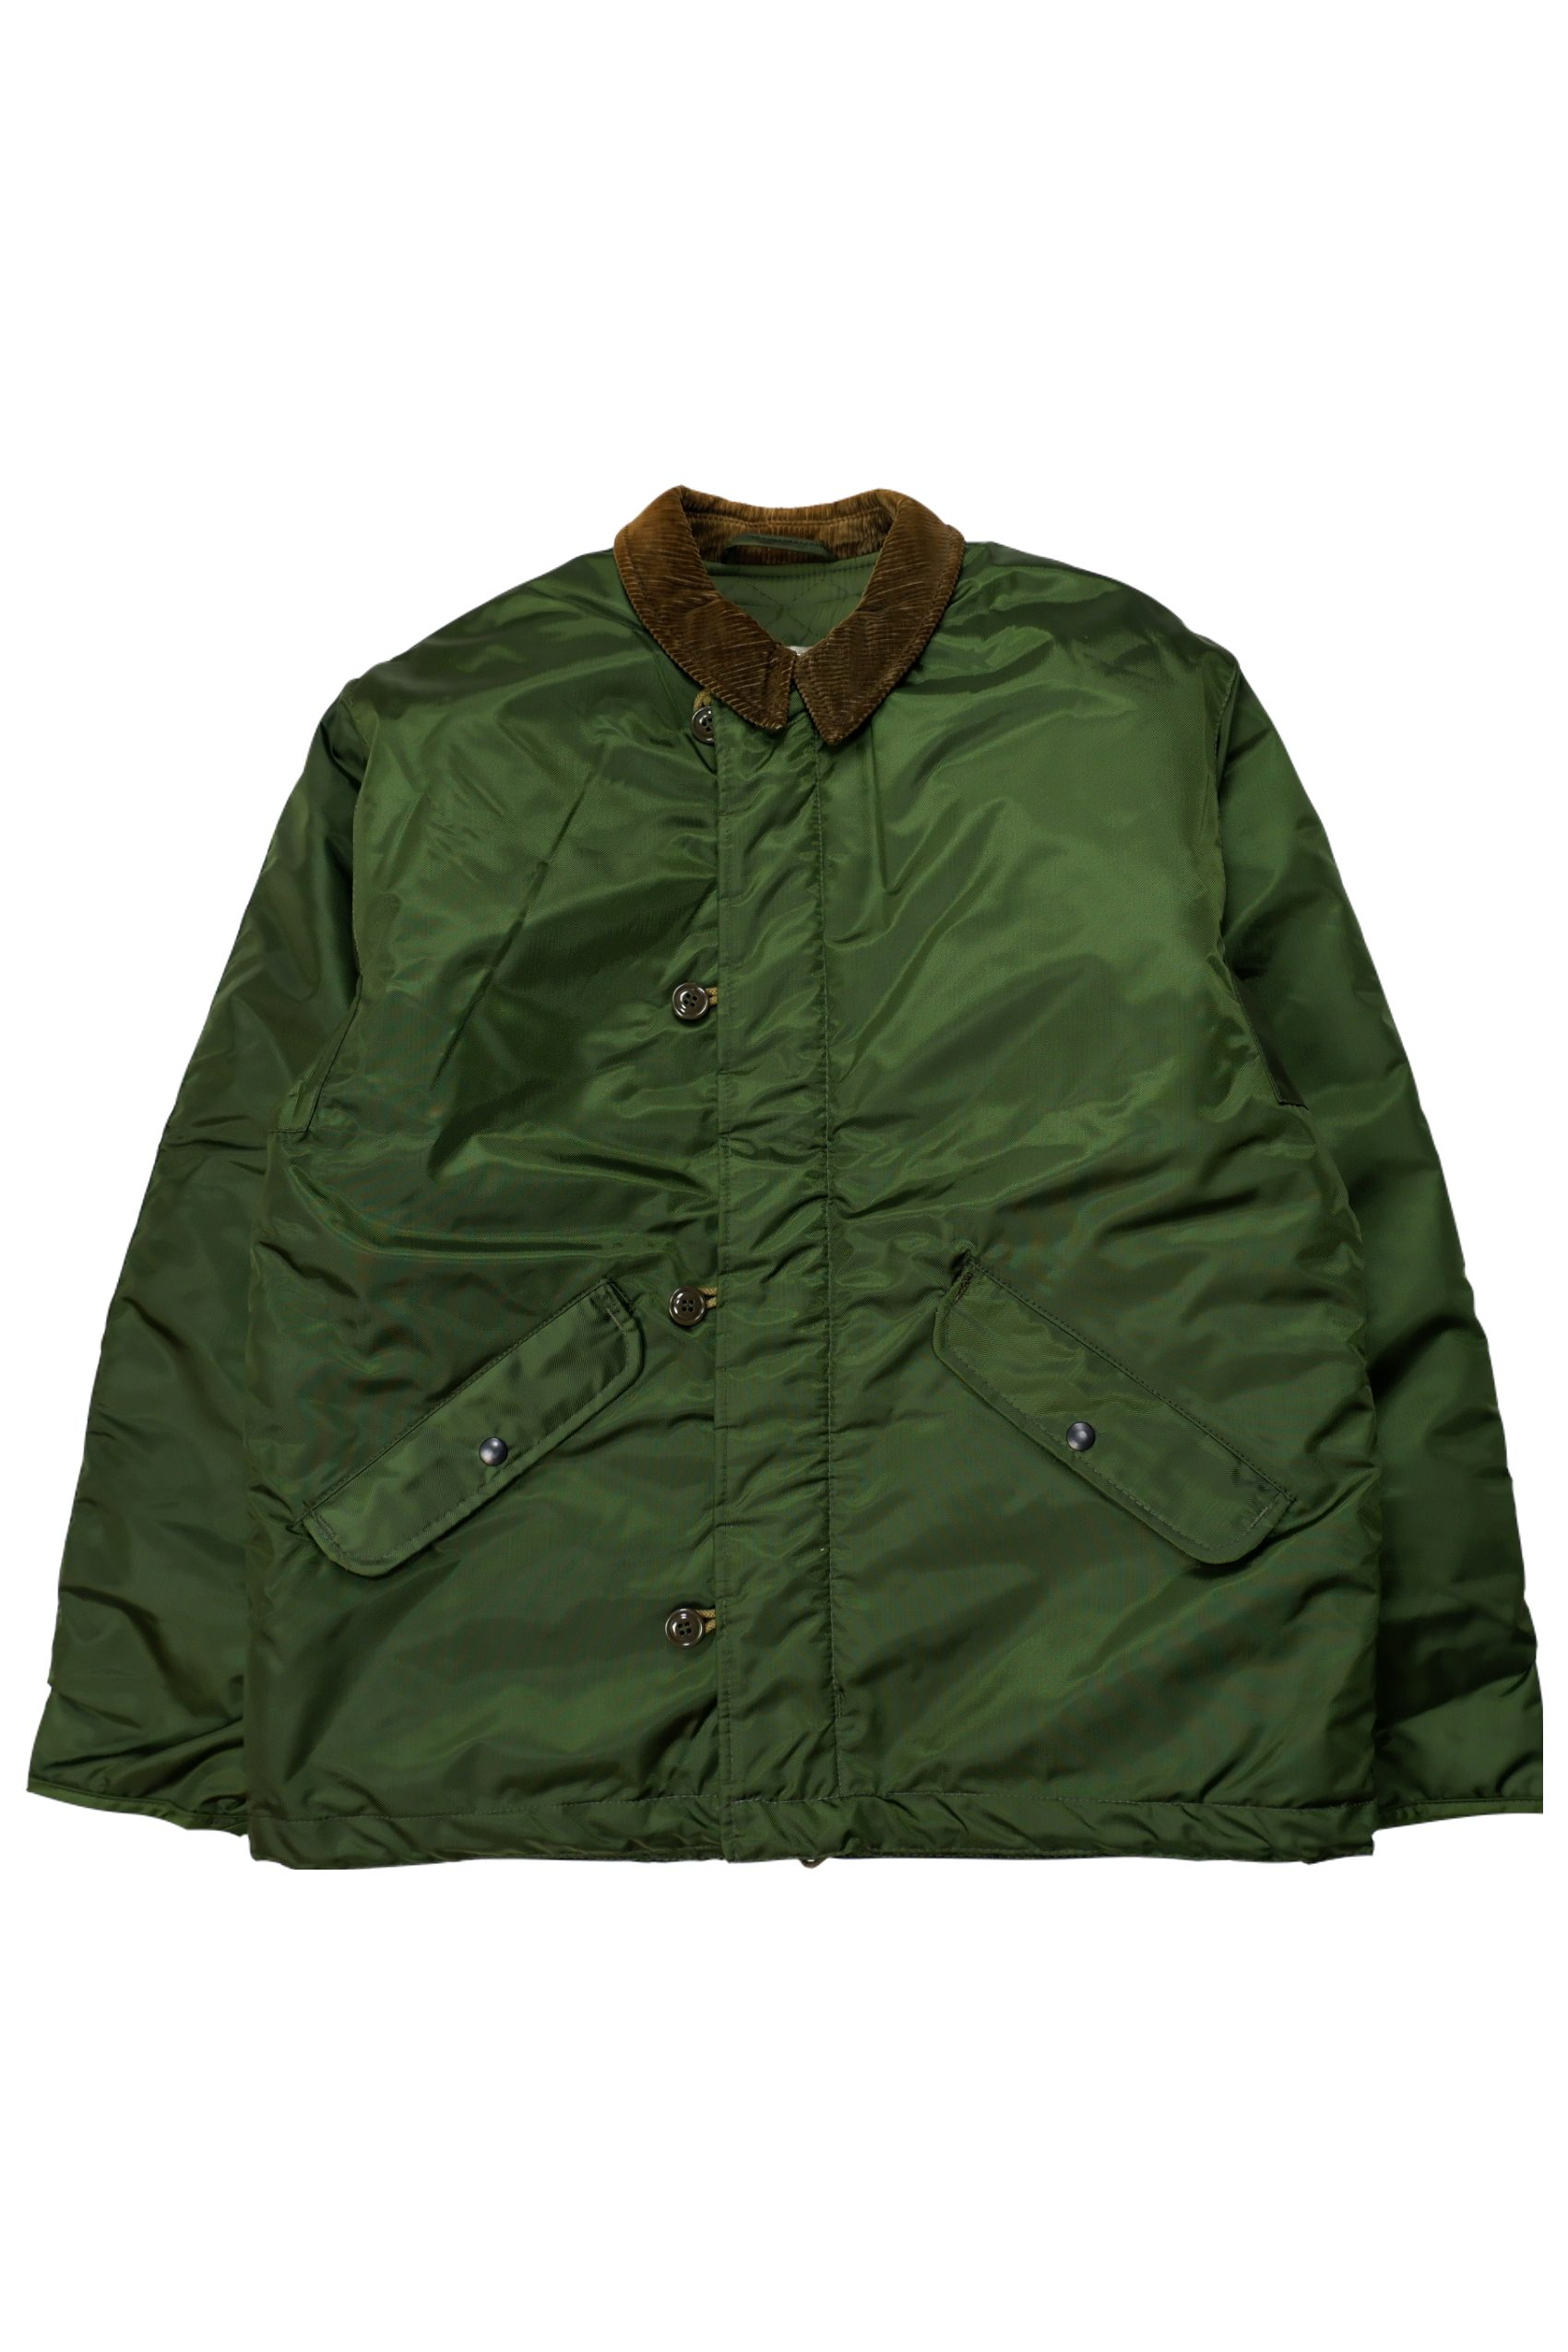 1980 Vintage Military Extreme Weather Impermeable Jacket